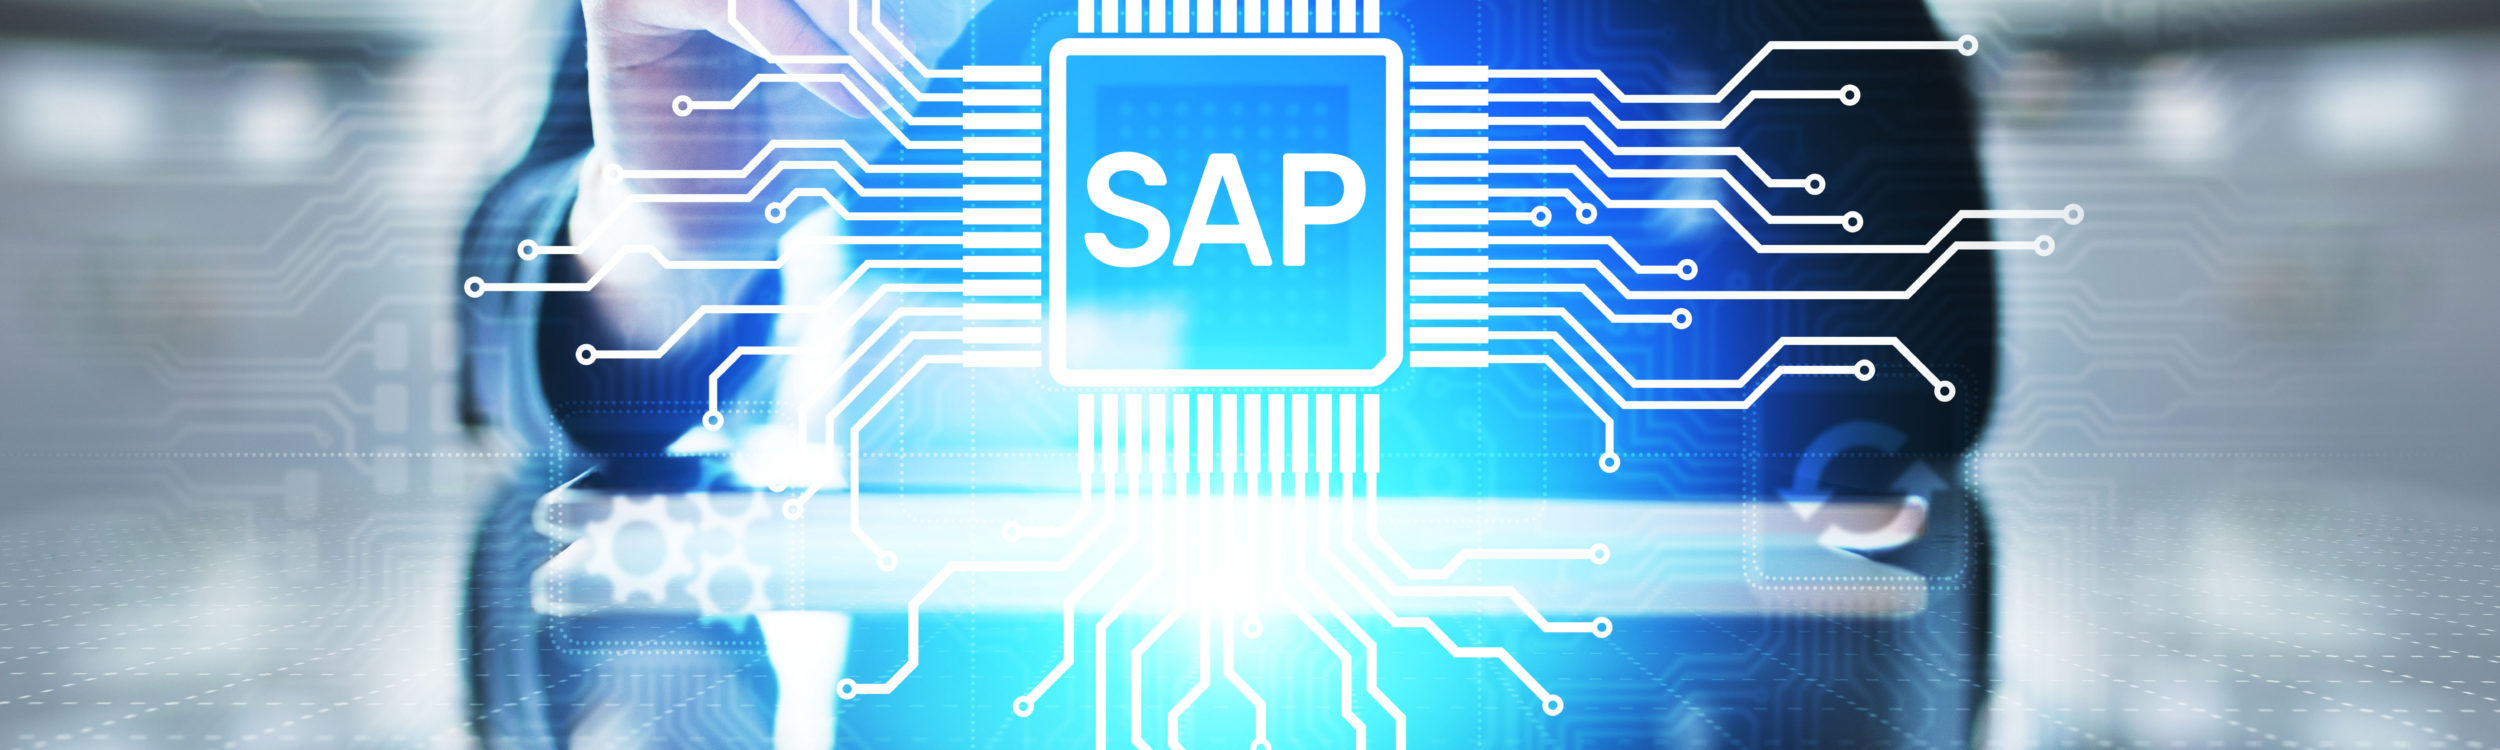 SAP Application Interface Framework: Leveraging Error Monitoring for Real Business Value featured image